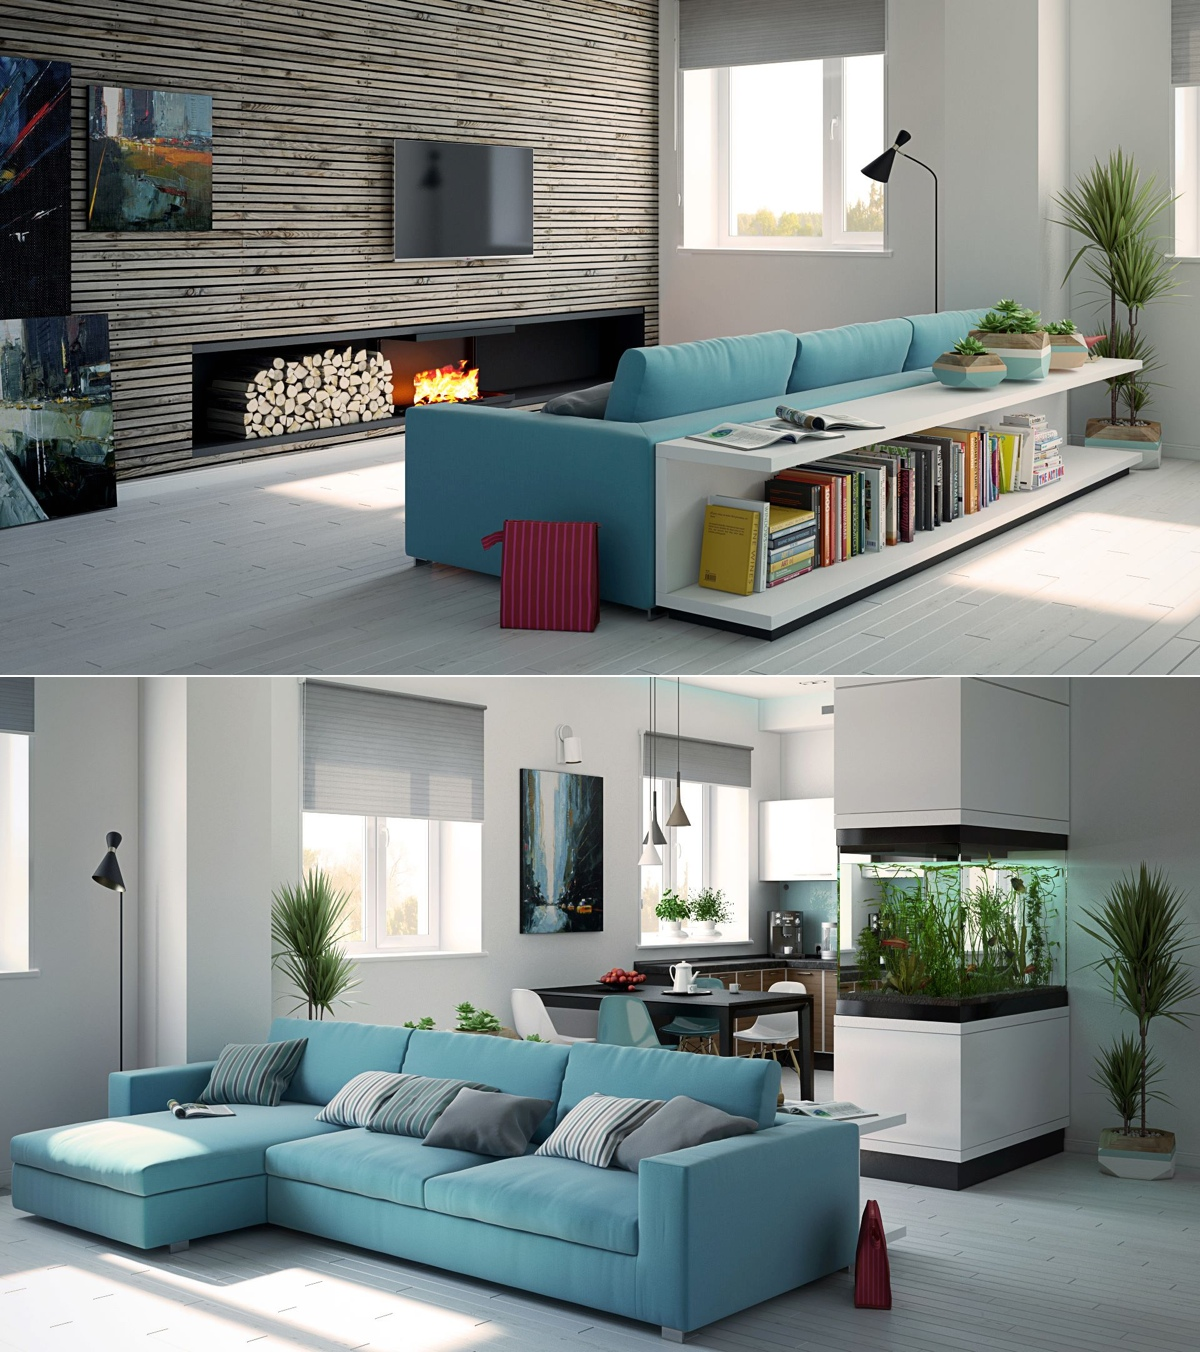 Modern Living Room Ideas: Awesomely Stylish Urban Living Rooms